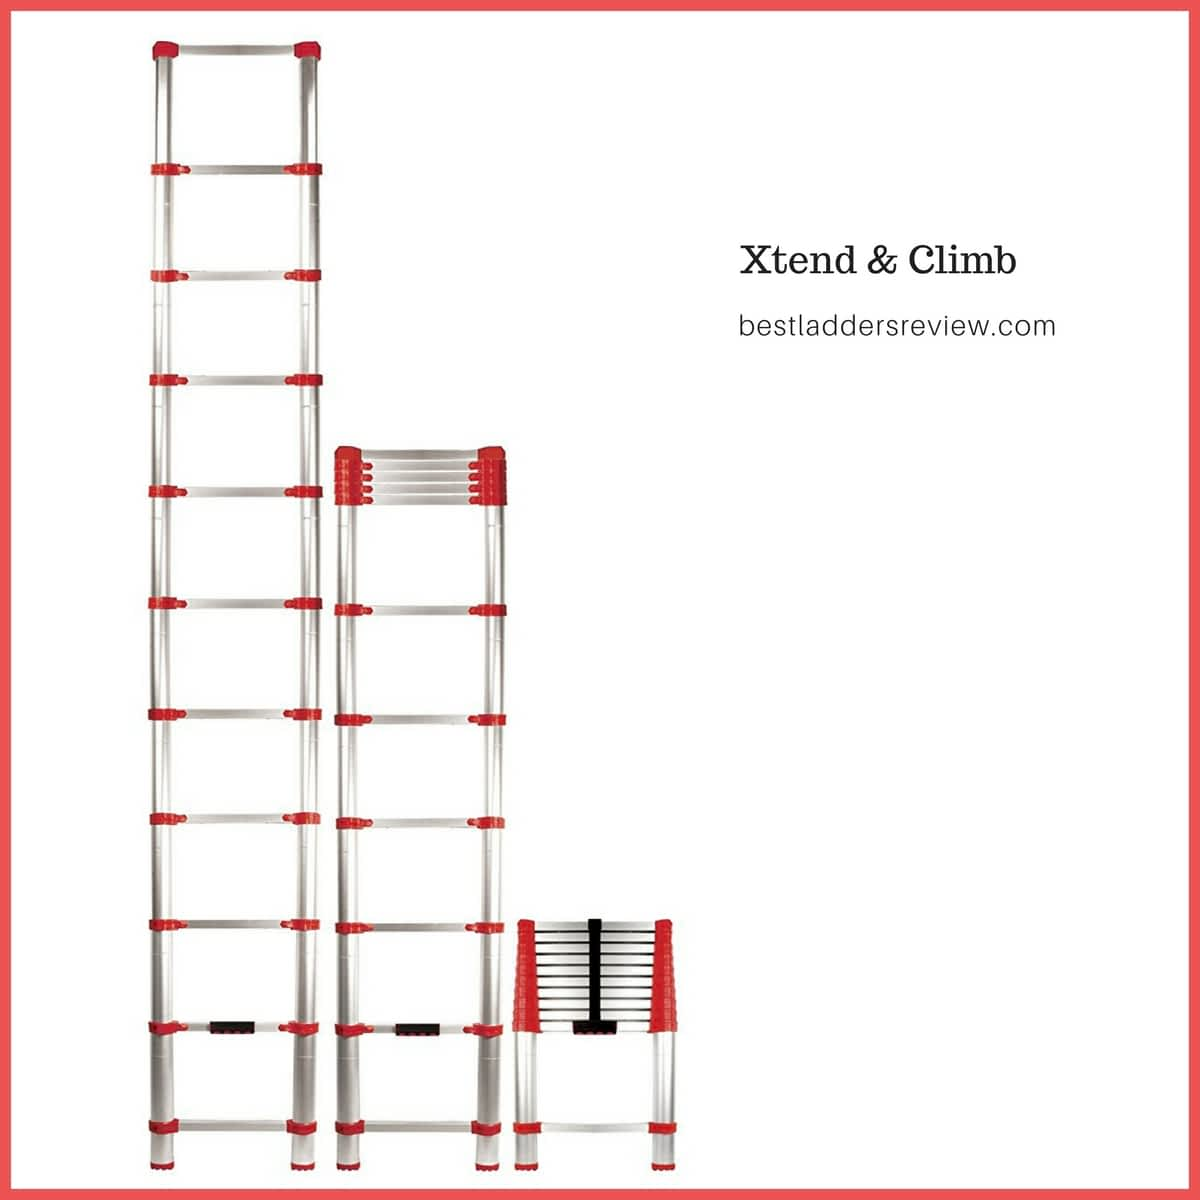 xtend & climb best telescoping ladders